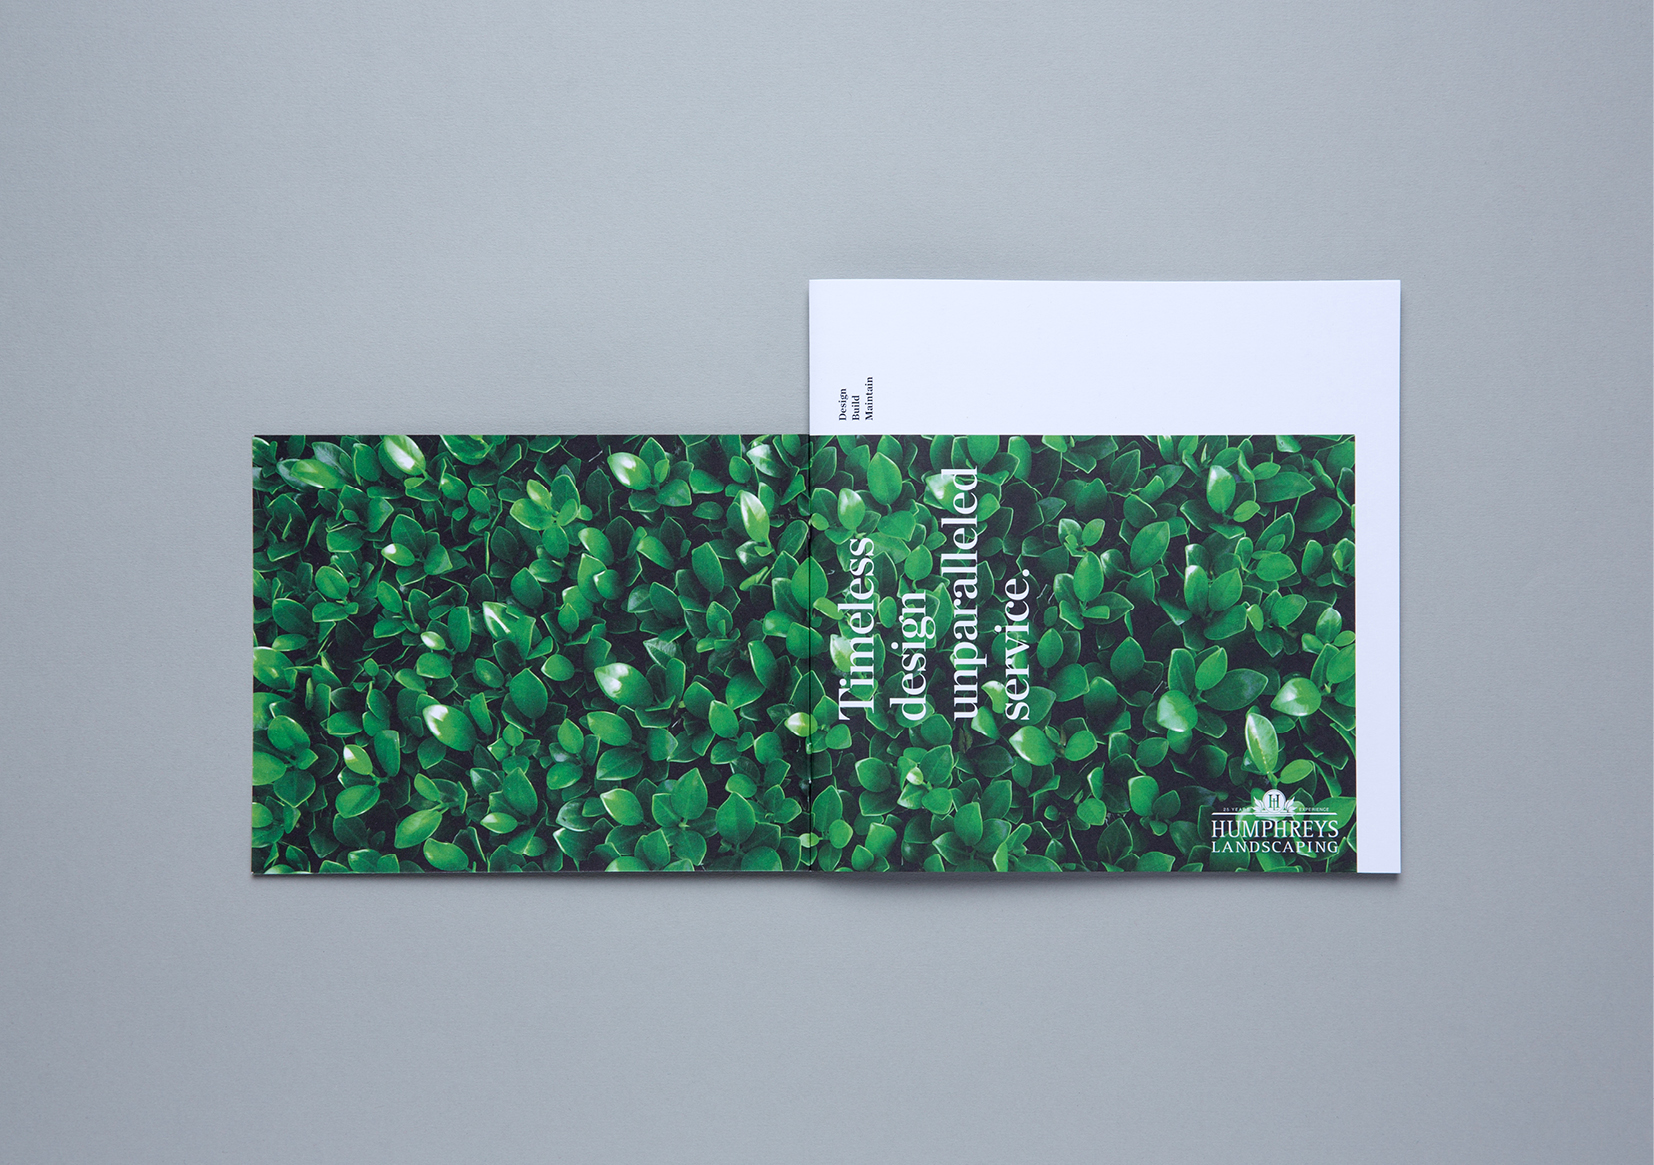 Humphreys Landscaping Brochure – spread showing open front cover featuring lush hedge